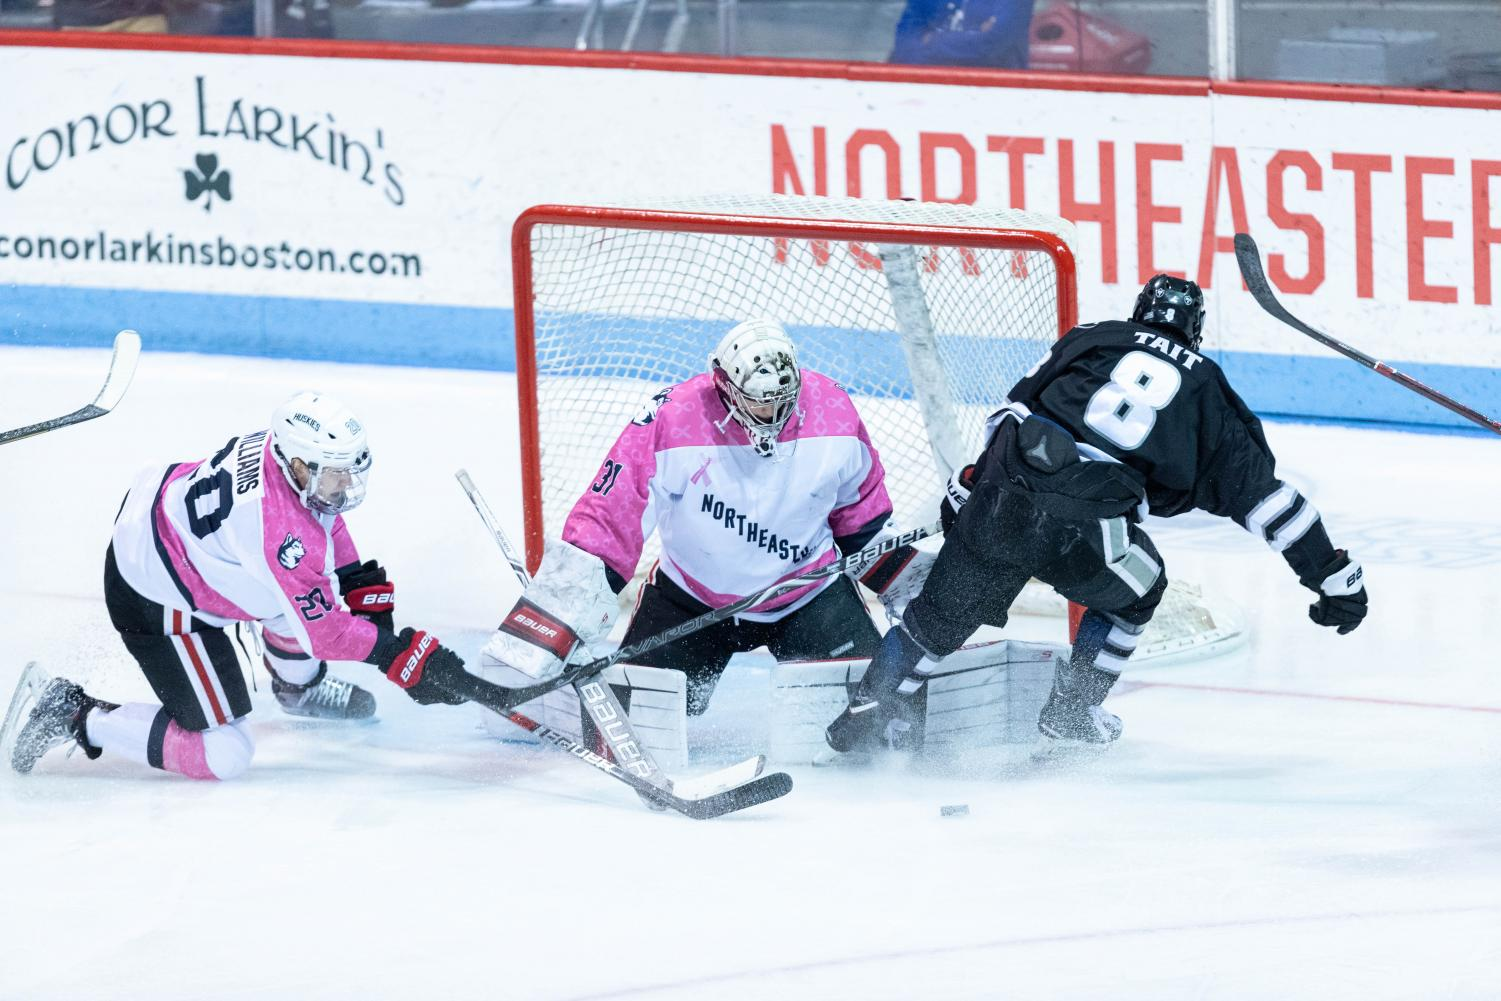 Sophomore goalkeeper Cayden Primeau drops to make a pad save in a prior game against Providence.